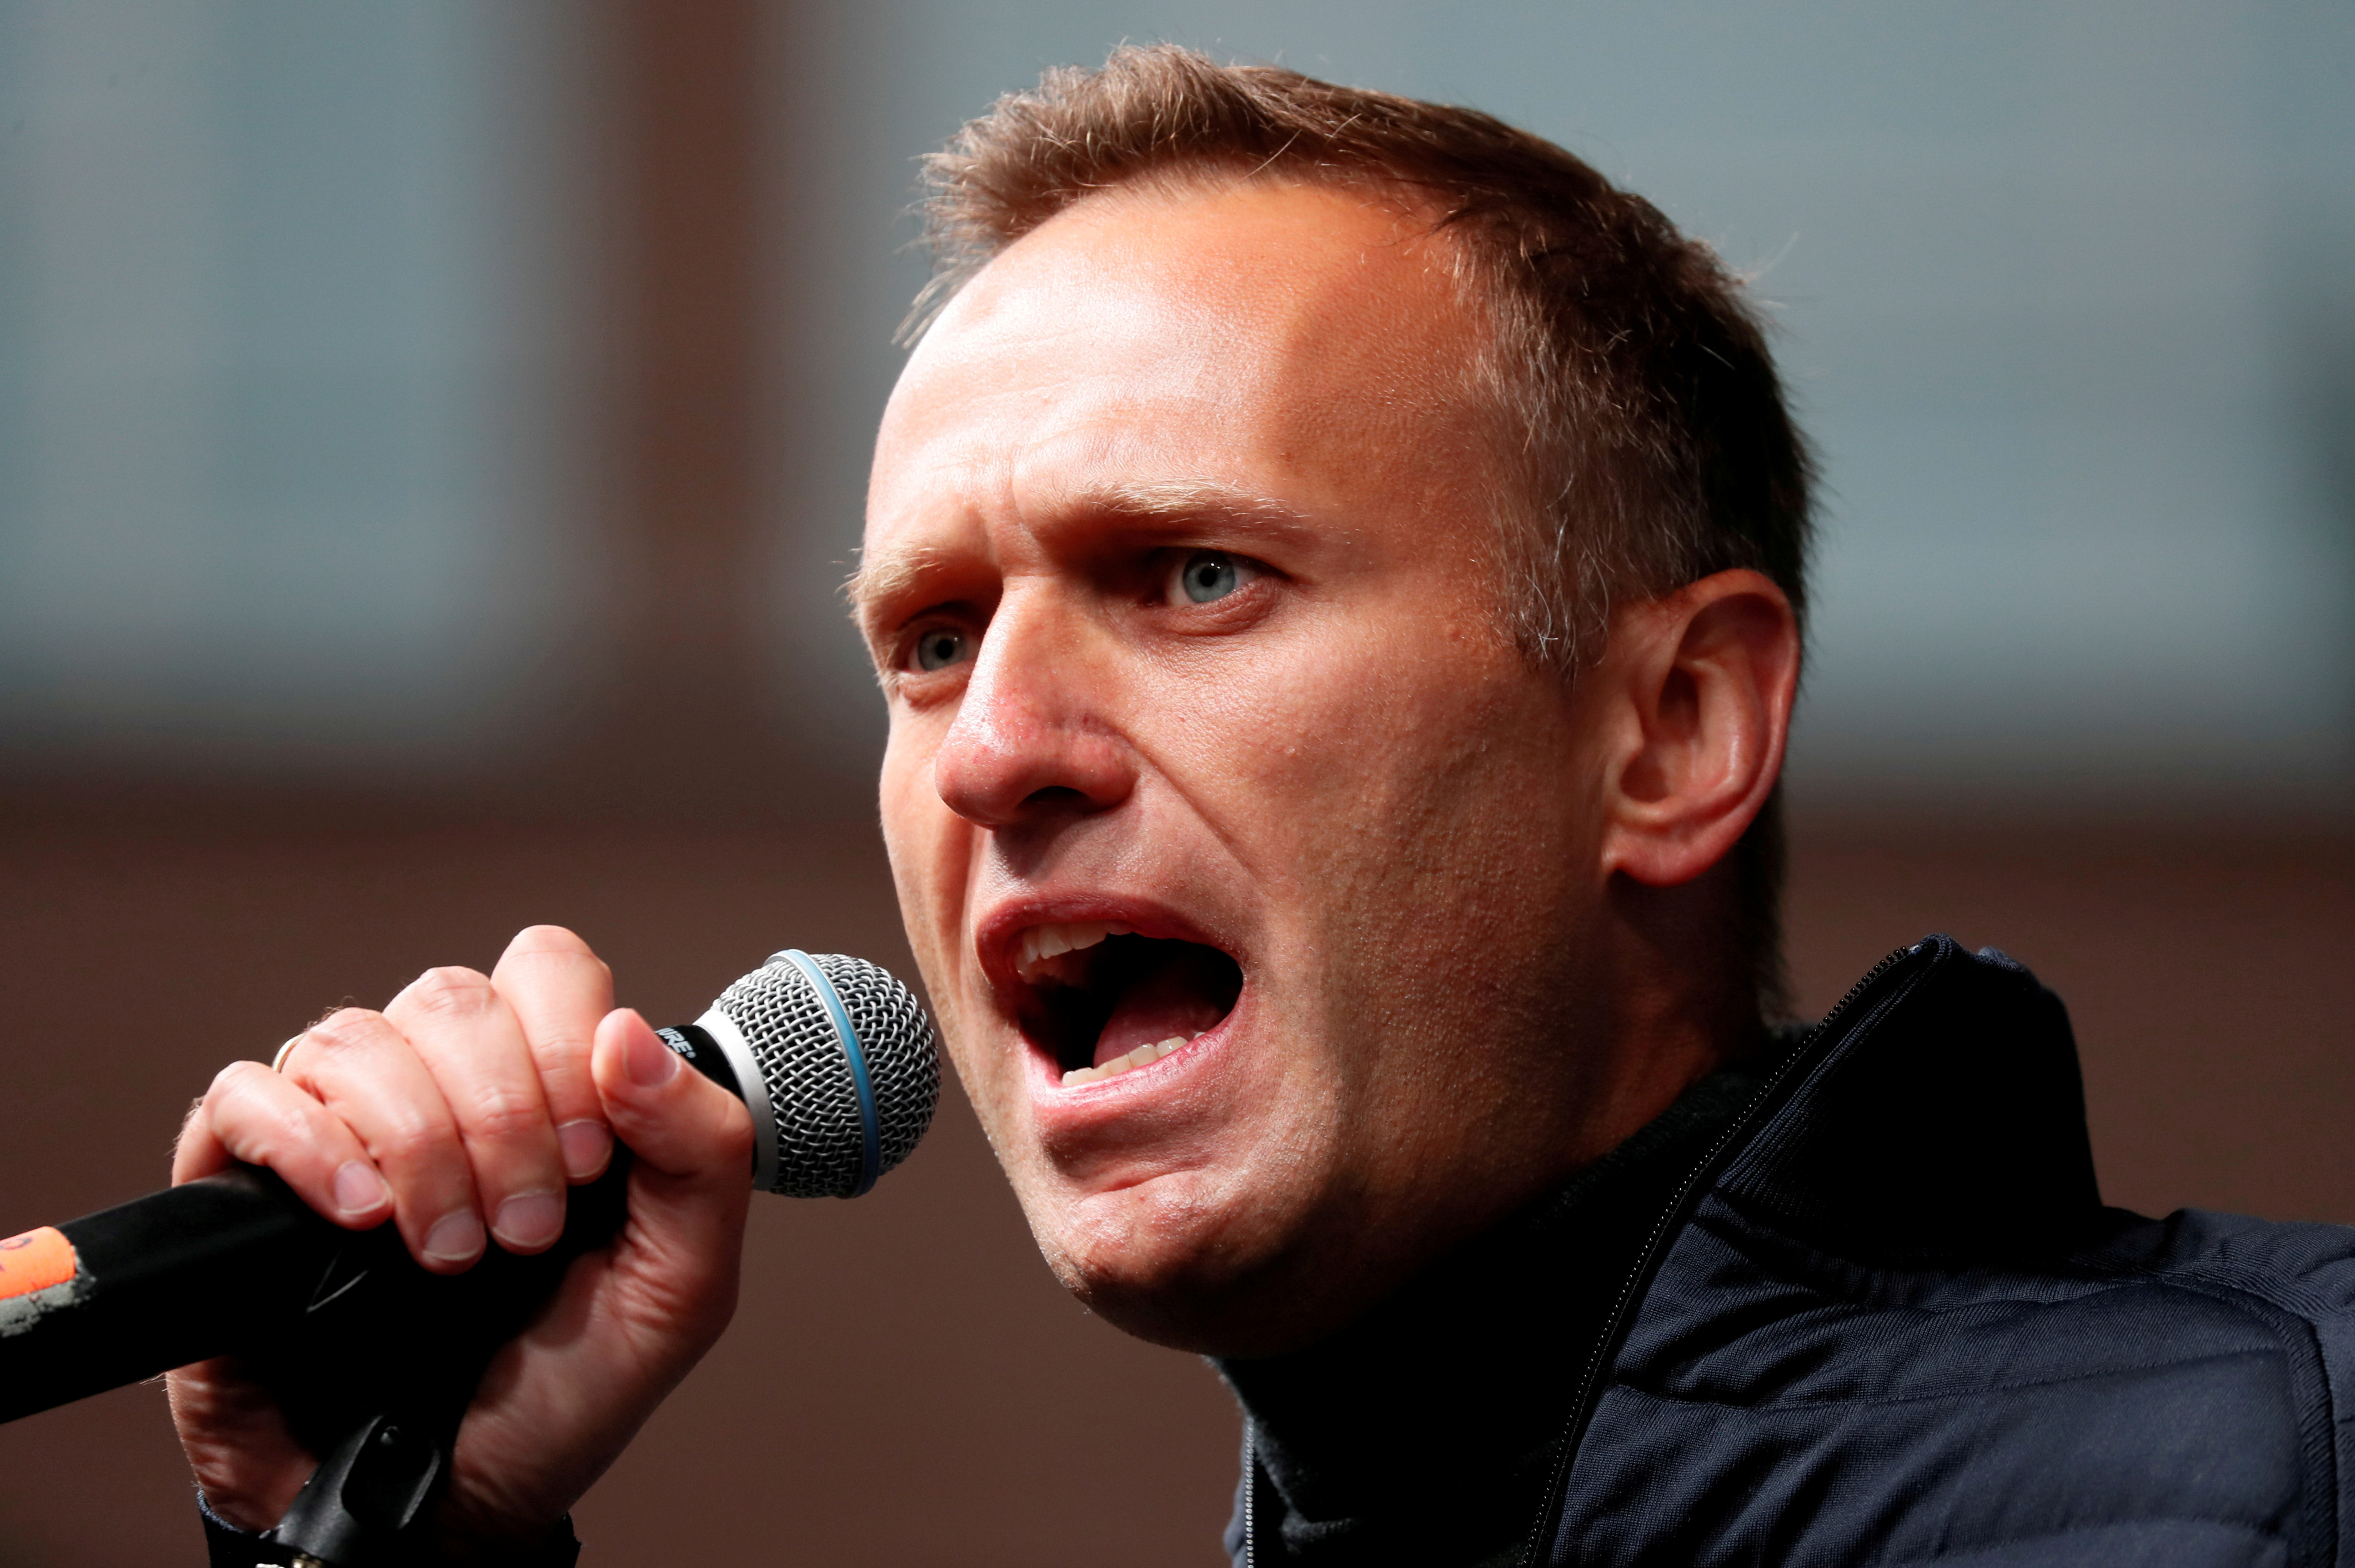 Russian opposition leader Alexei Navalny delivers a speech during a rally to demand the release of jailed protesters, who were detained during opposition demonstrations for fair elections, in Moscow, Russia September 29, 2019. REUTERS/Shamil Zhumatov/File Photo